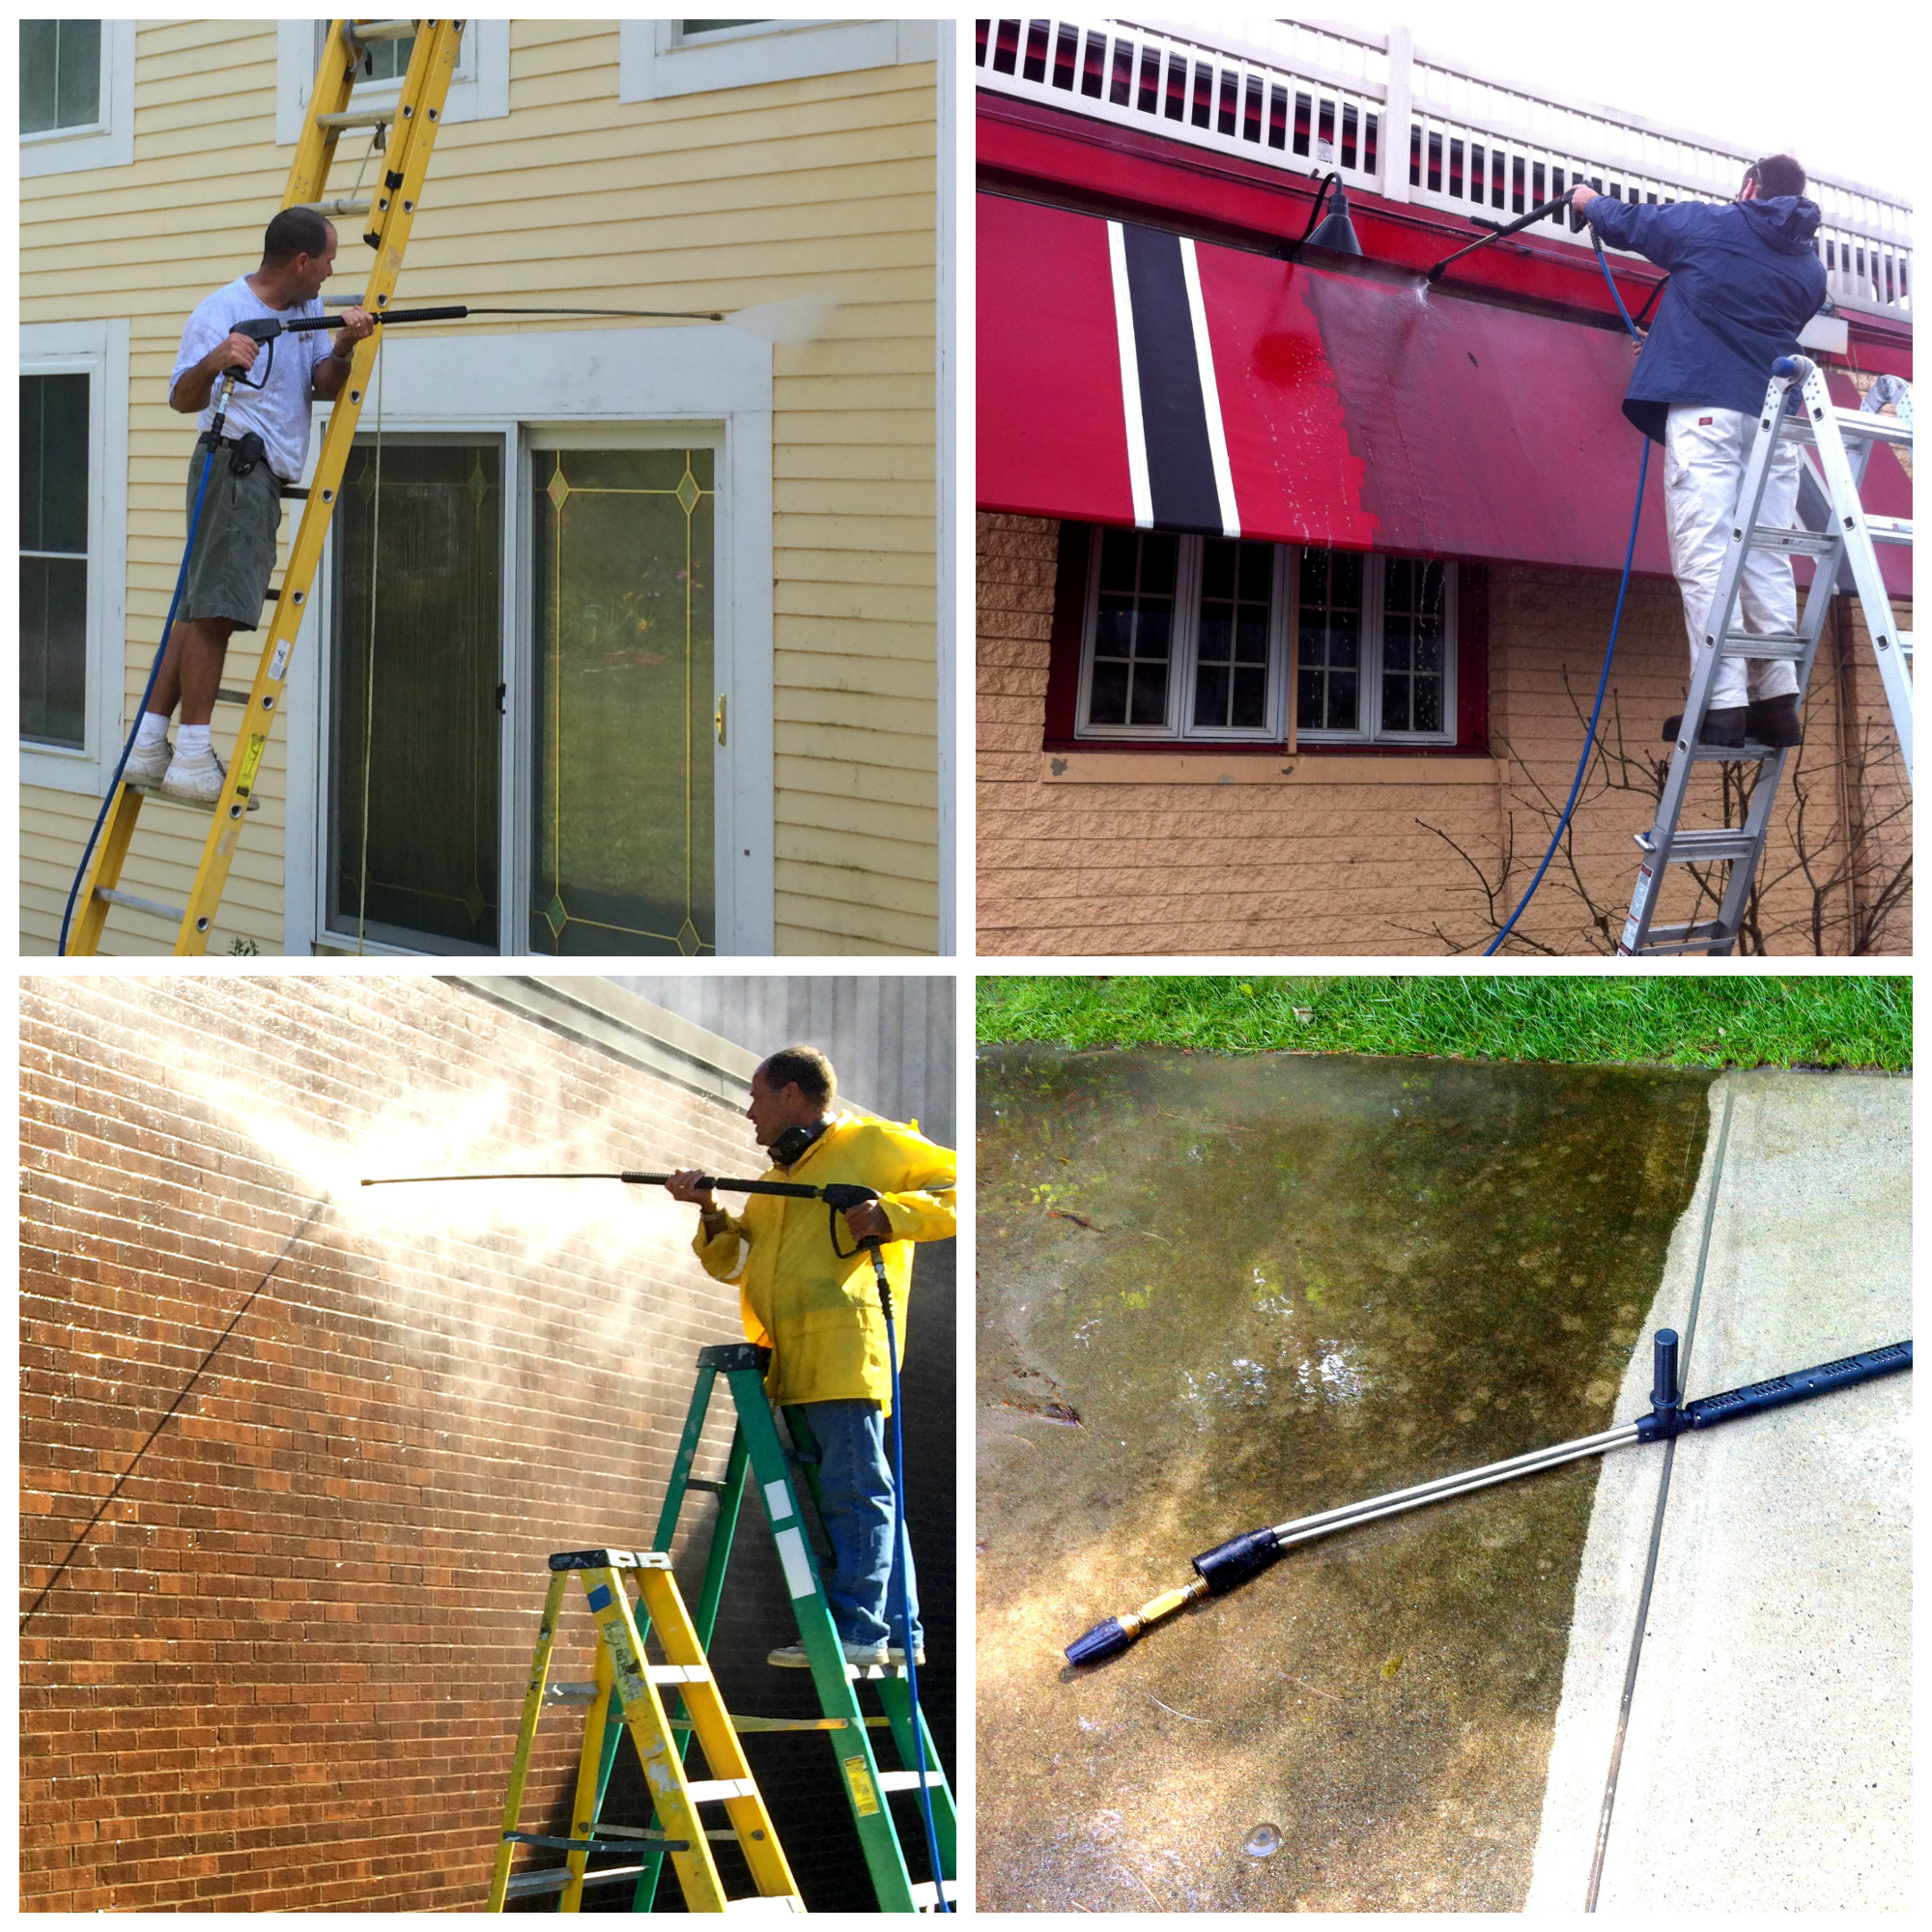 collage of man on ladder powerwashing buildings